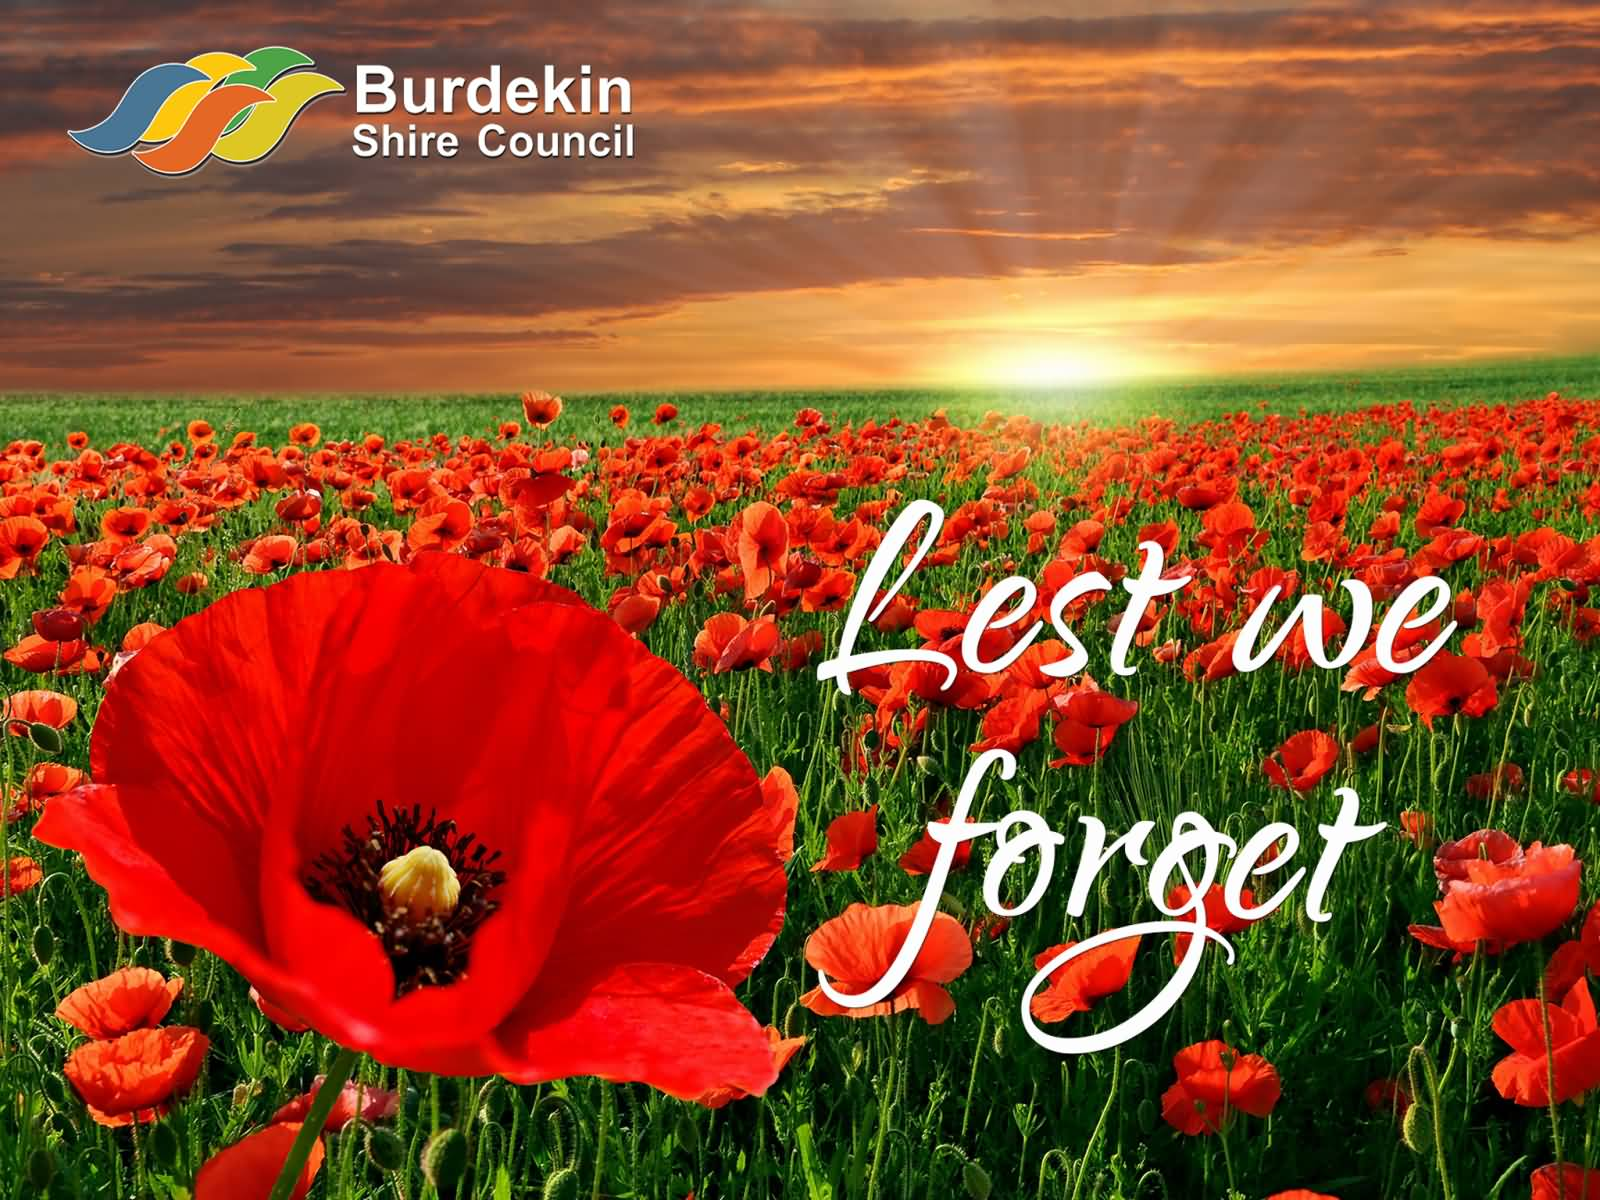 Lest we forget anzac day poppy flowers field picture mightylinksfo